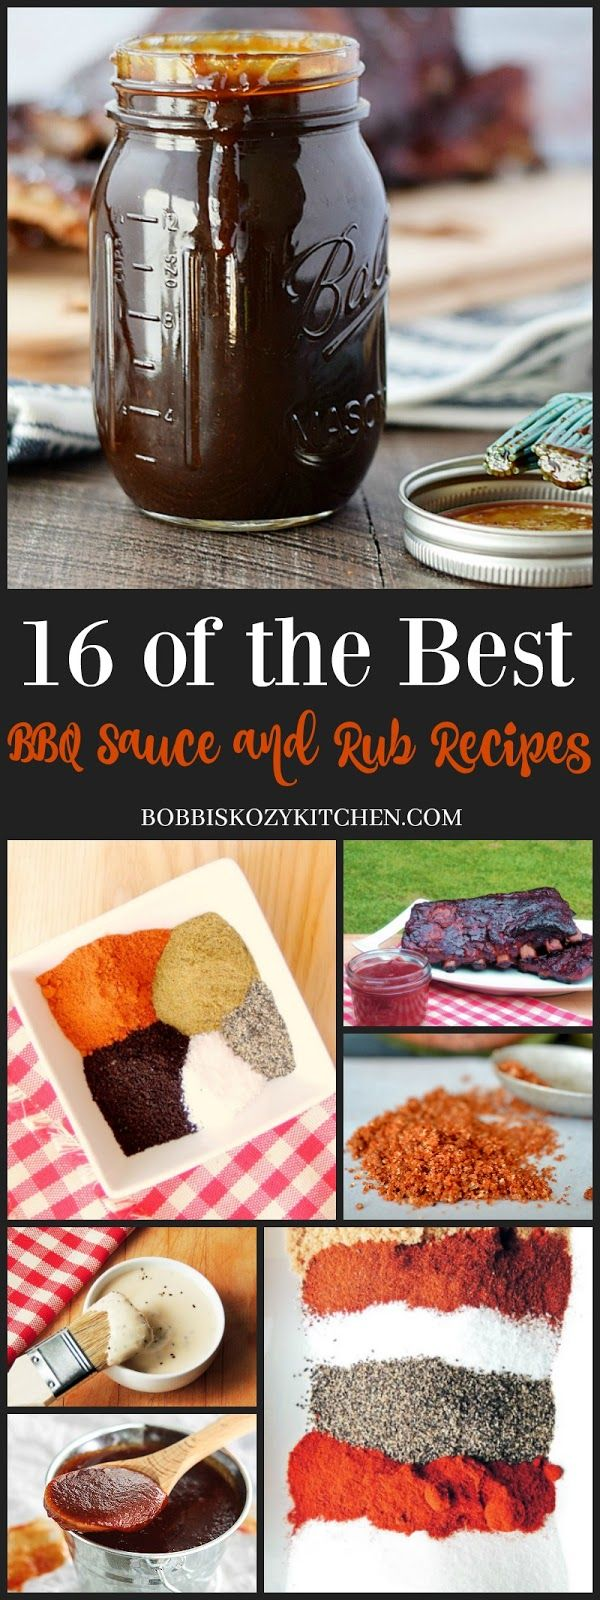 16 of the Best BBQ Sauce and Rub Recipes from www.bobbiskozykitchen.com